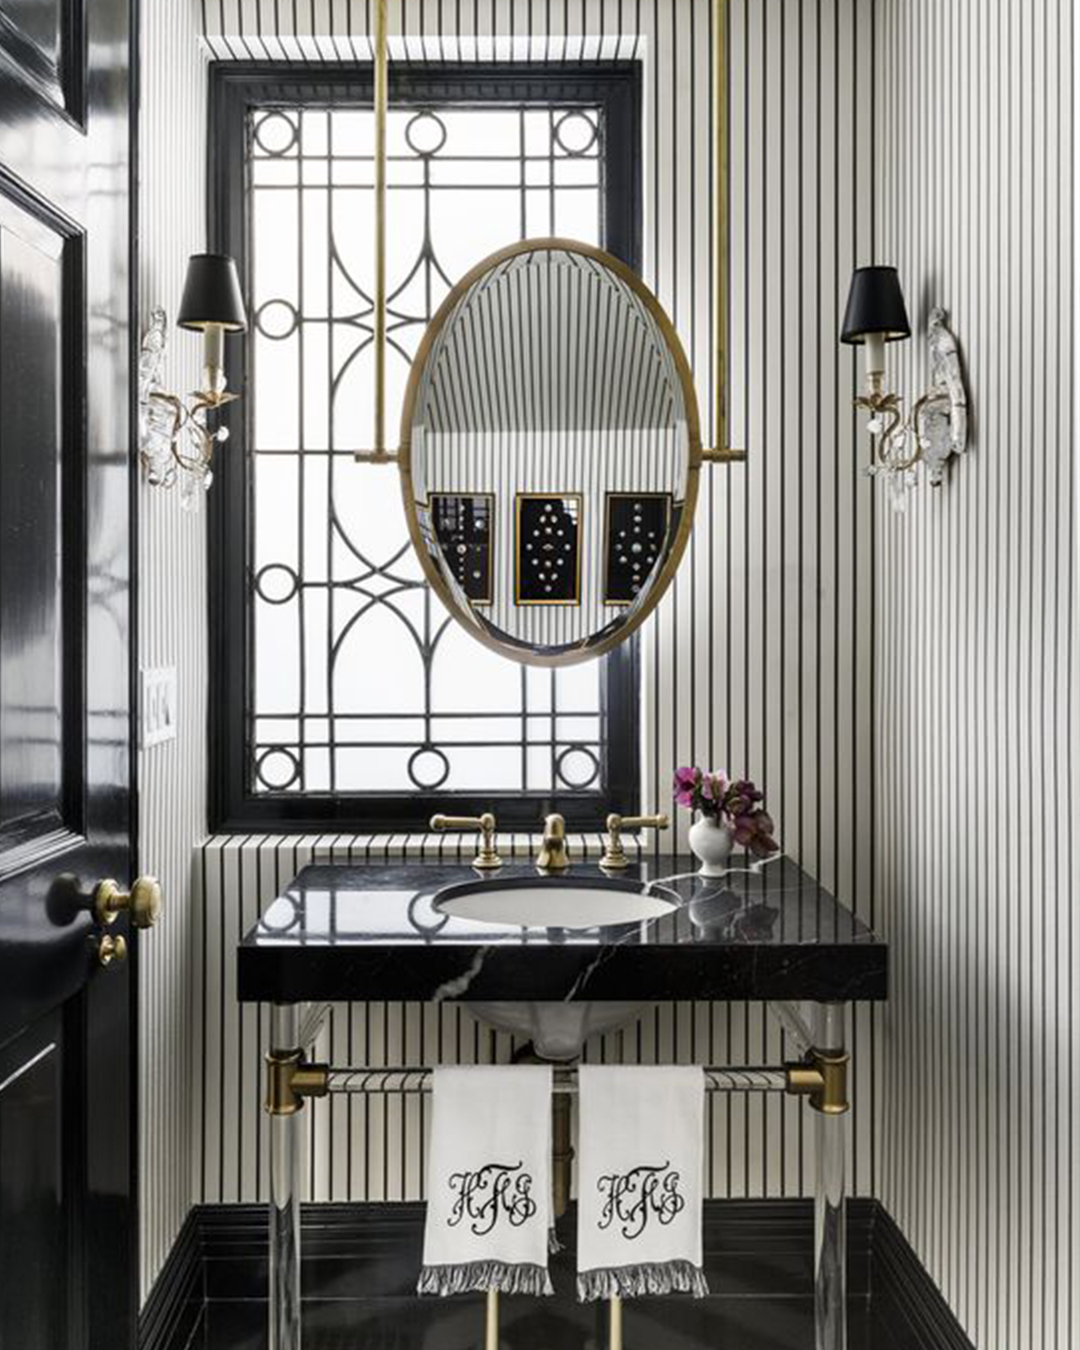 Grand Millenial style bathroom with gold oval mirror, striped wallpaper and black accents